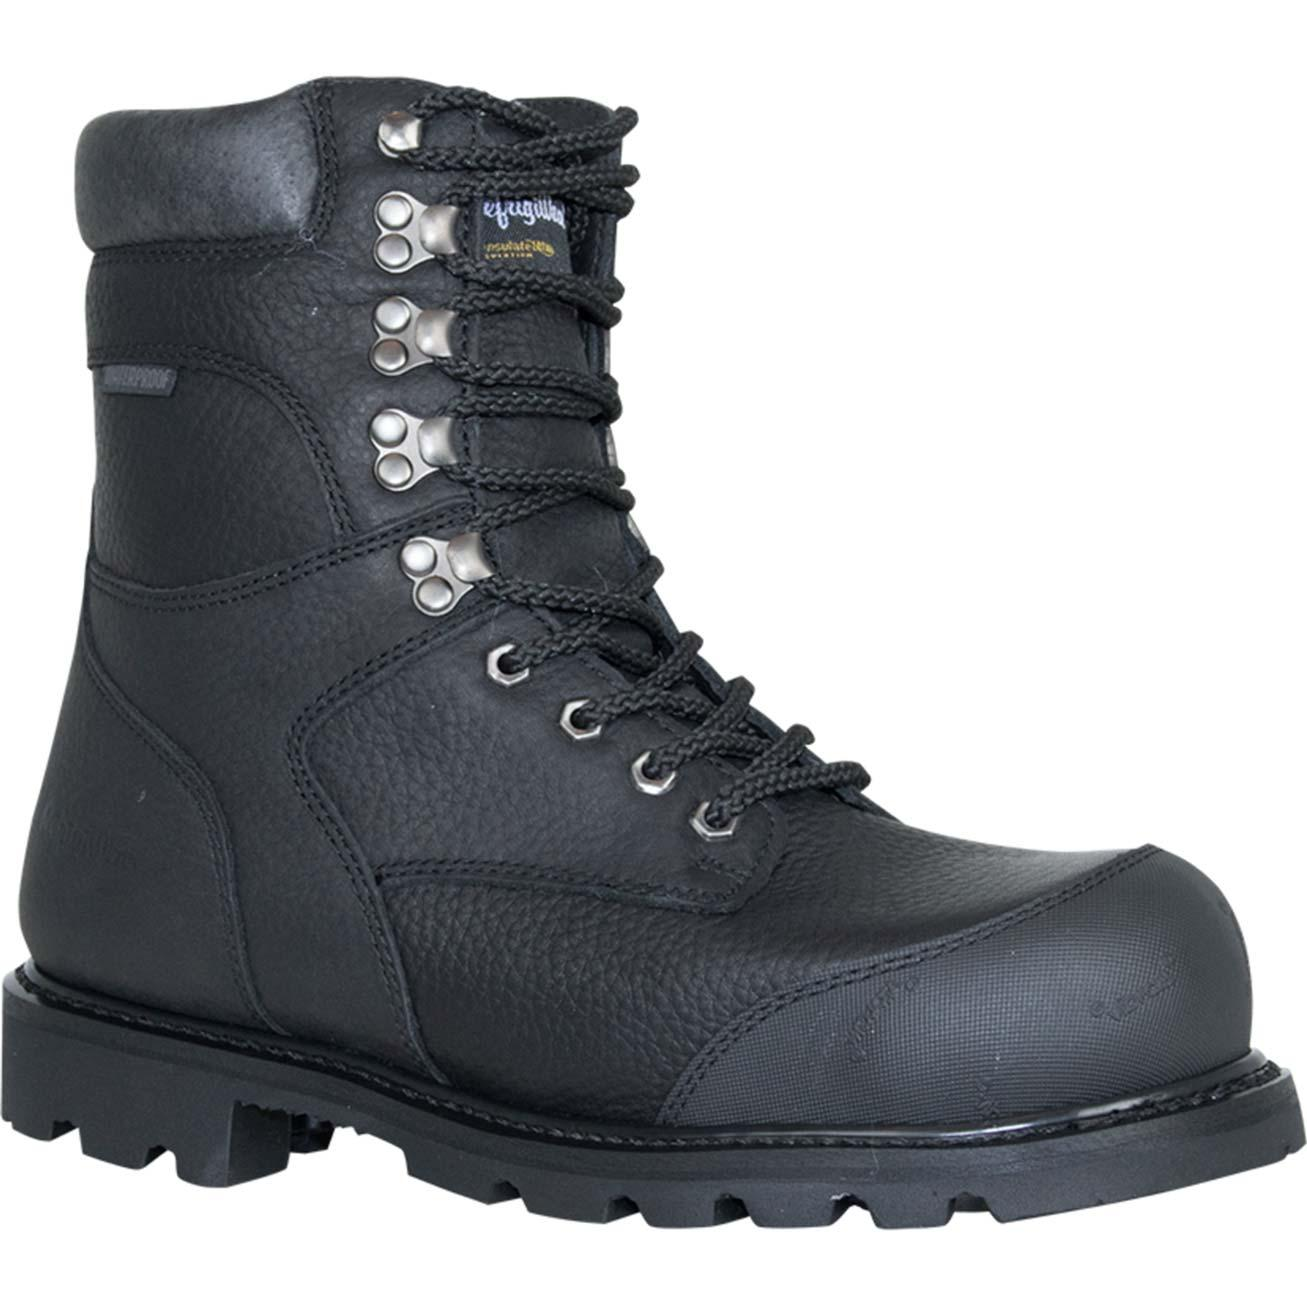 f476c18f2b8 RefrigiWear Titanium Leather Composite Toe Waterproof 800g Insulated Work  Boot